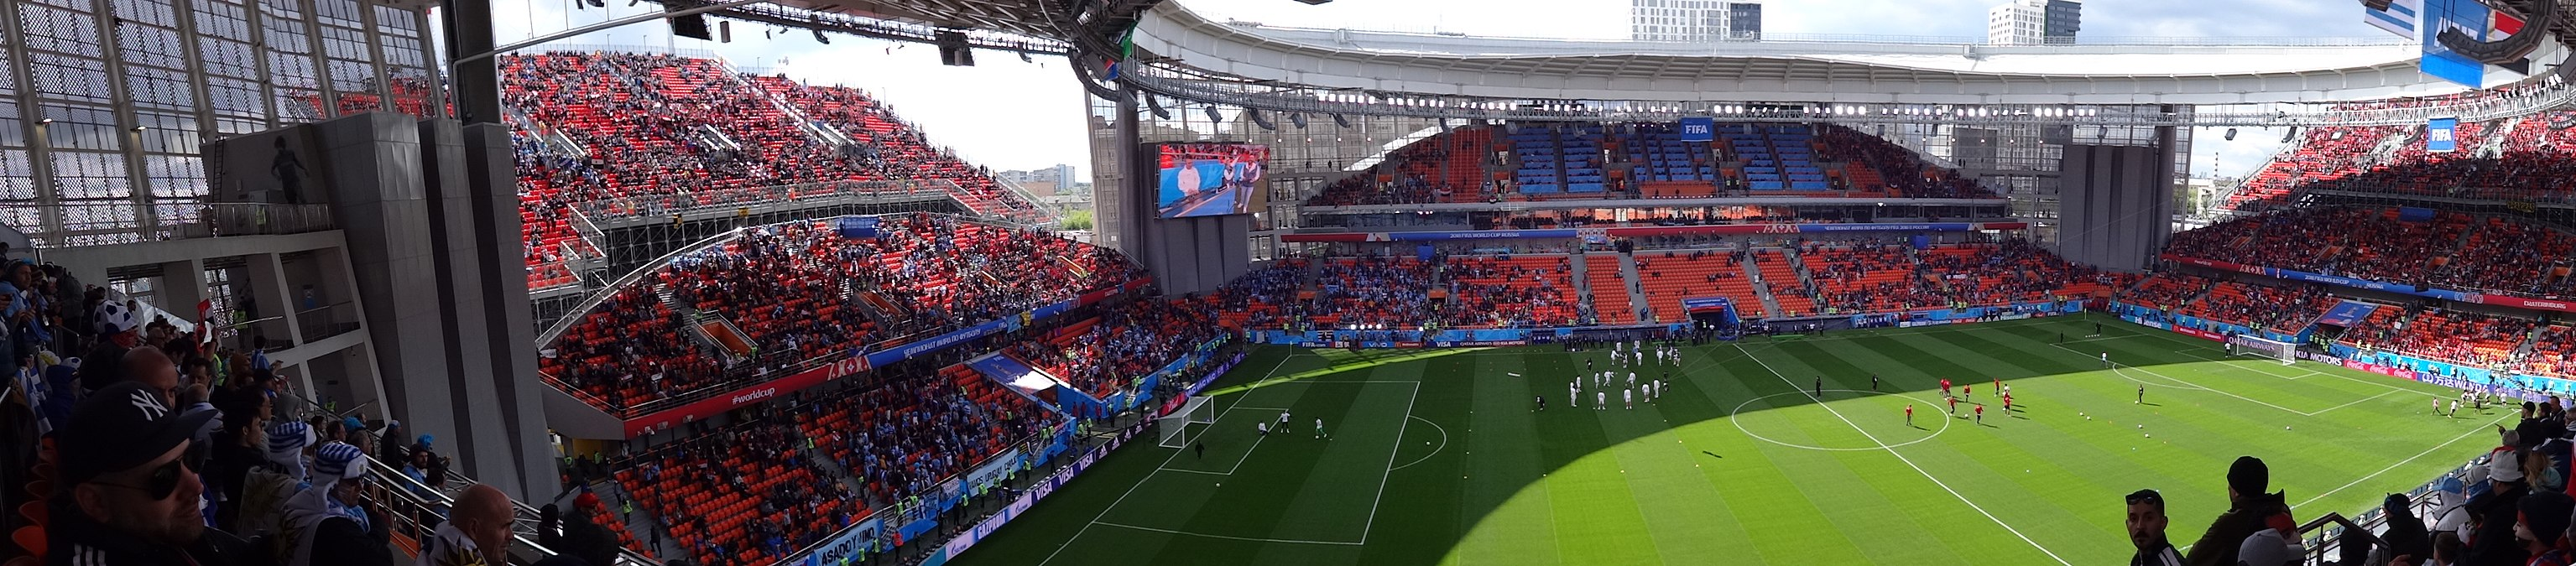 2018 FIFA World Cup Group A march EGY-URU - Panorama (warm-up).jpg